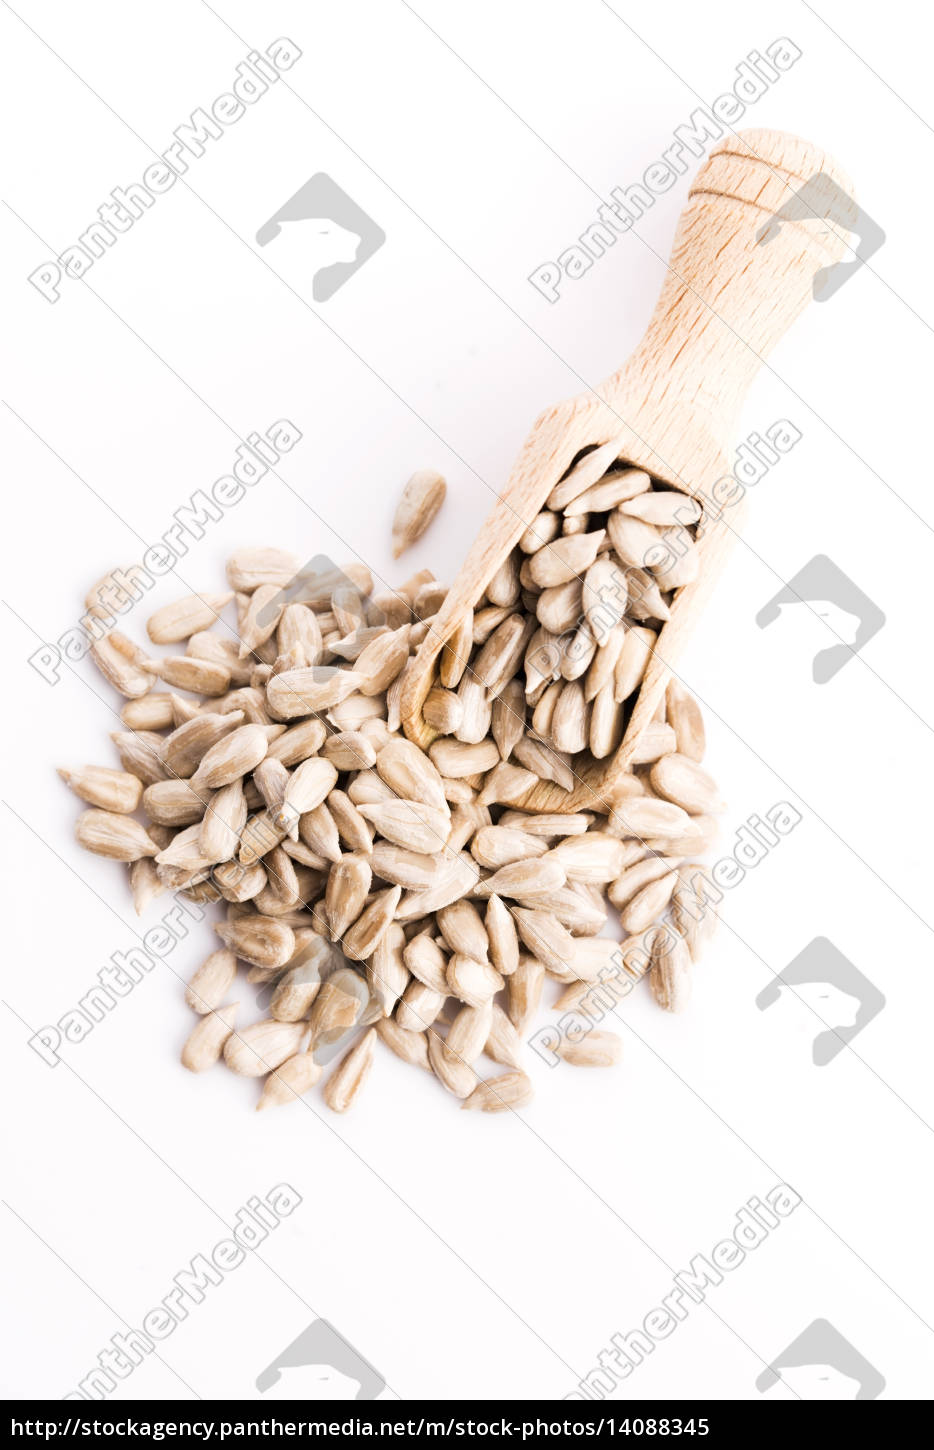 sunflower, seeds, isolated, on, white - 14088345